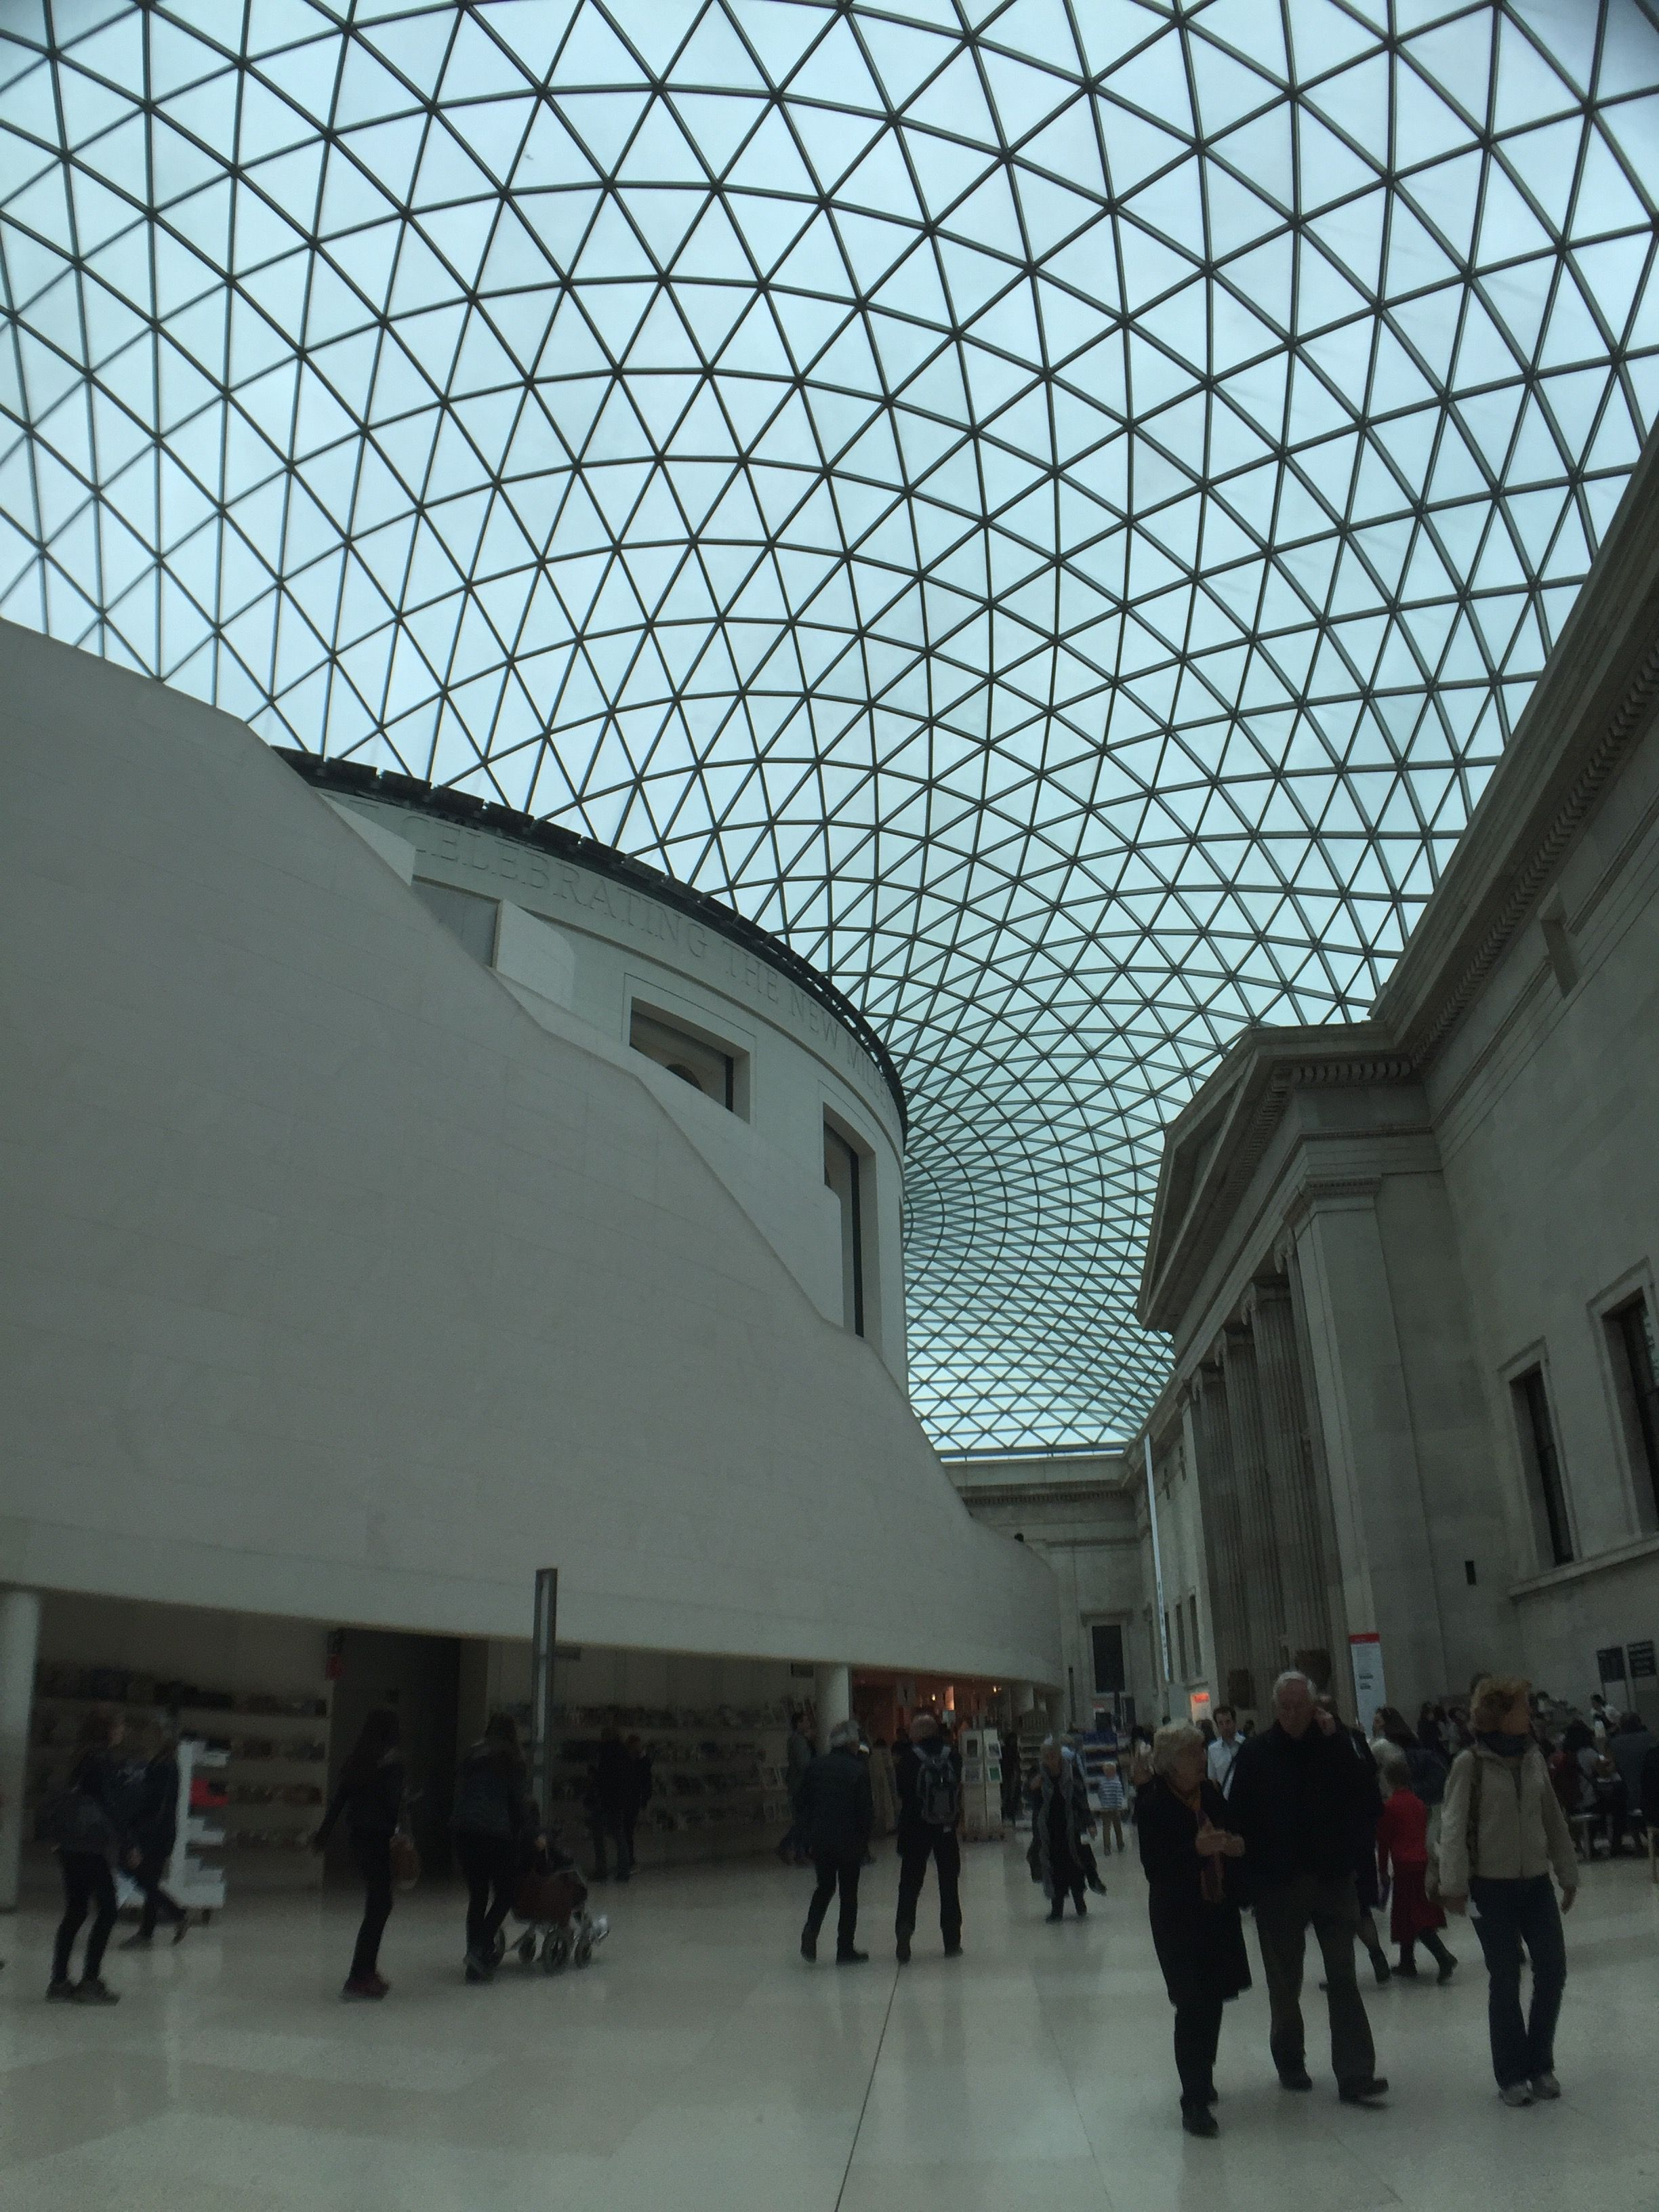 The Great Court Of The British Museum Is Covered By Glass Roof Designed By Buro Happold Creating The Largest Covered Square In Glass Roof Roof Design Roofing